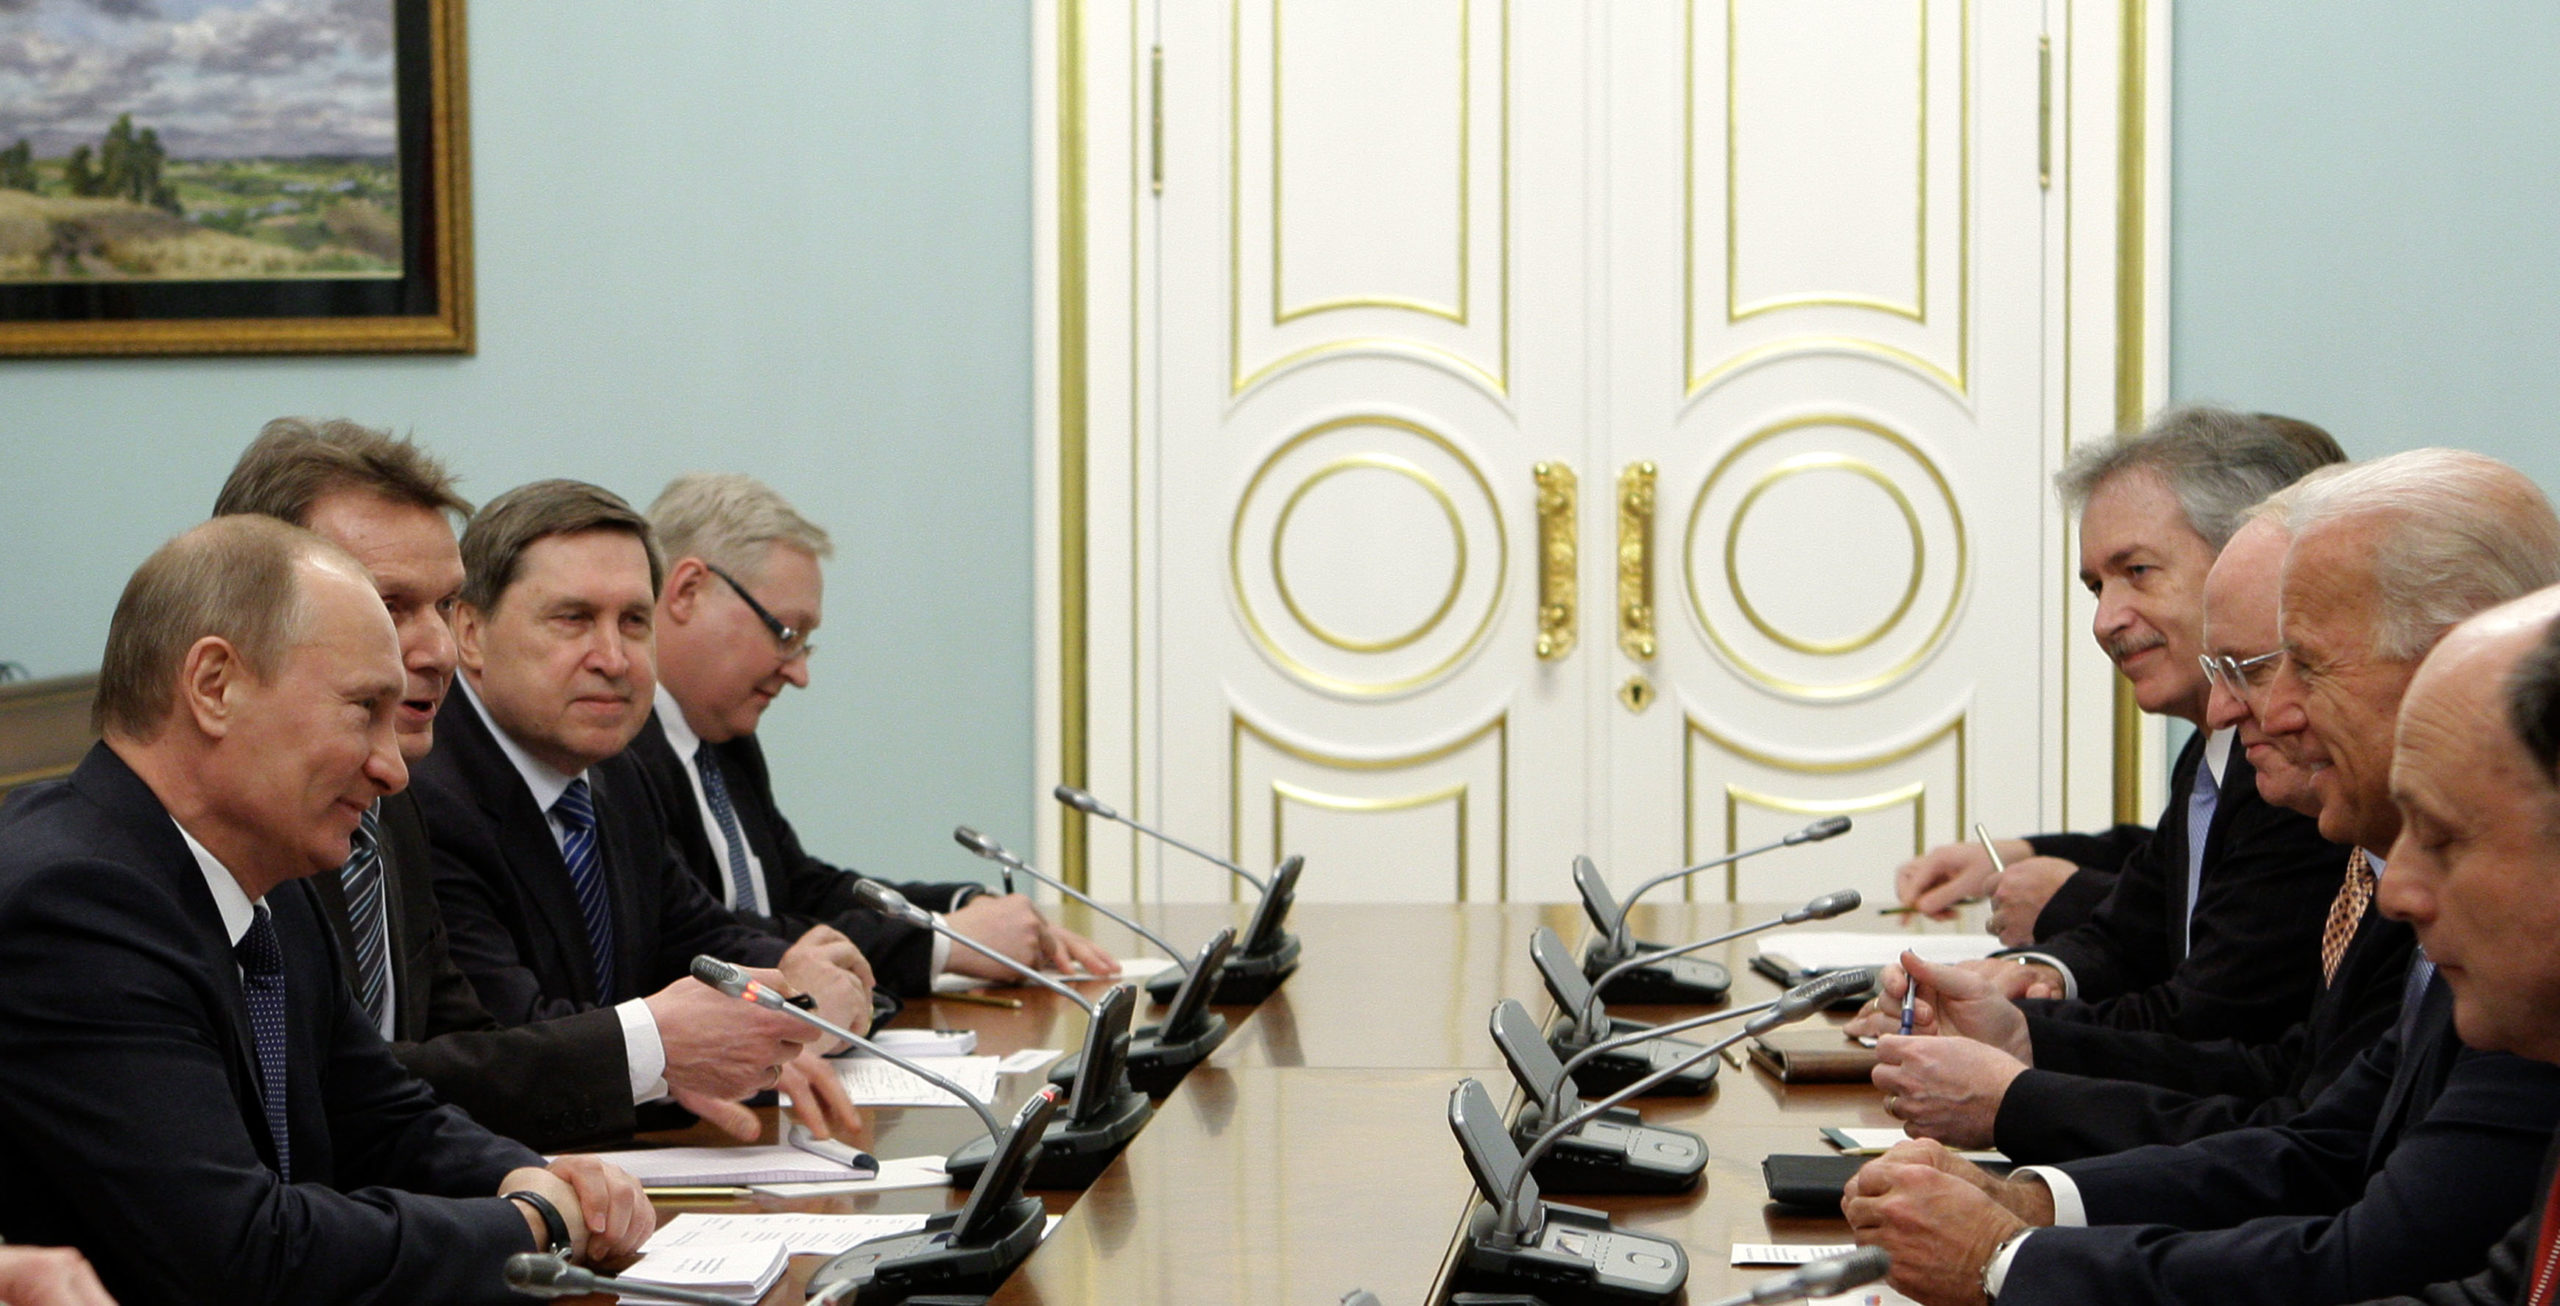 Russian Prime Minister Vladimir Putin (L) and US Vice President Joe Biden (2nd R) meet on March 10, 2011 with their delegations in Moscow. Putin on March 10 proposed to Biden that Russia and the United States abolish visas in a